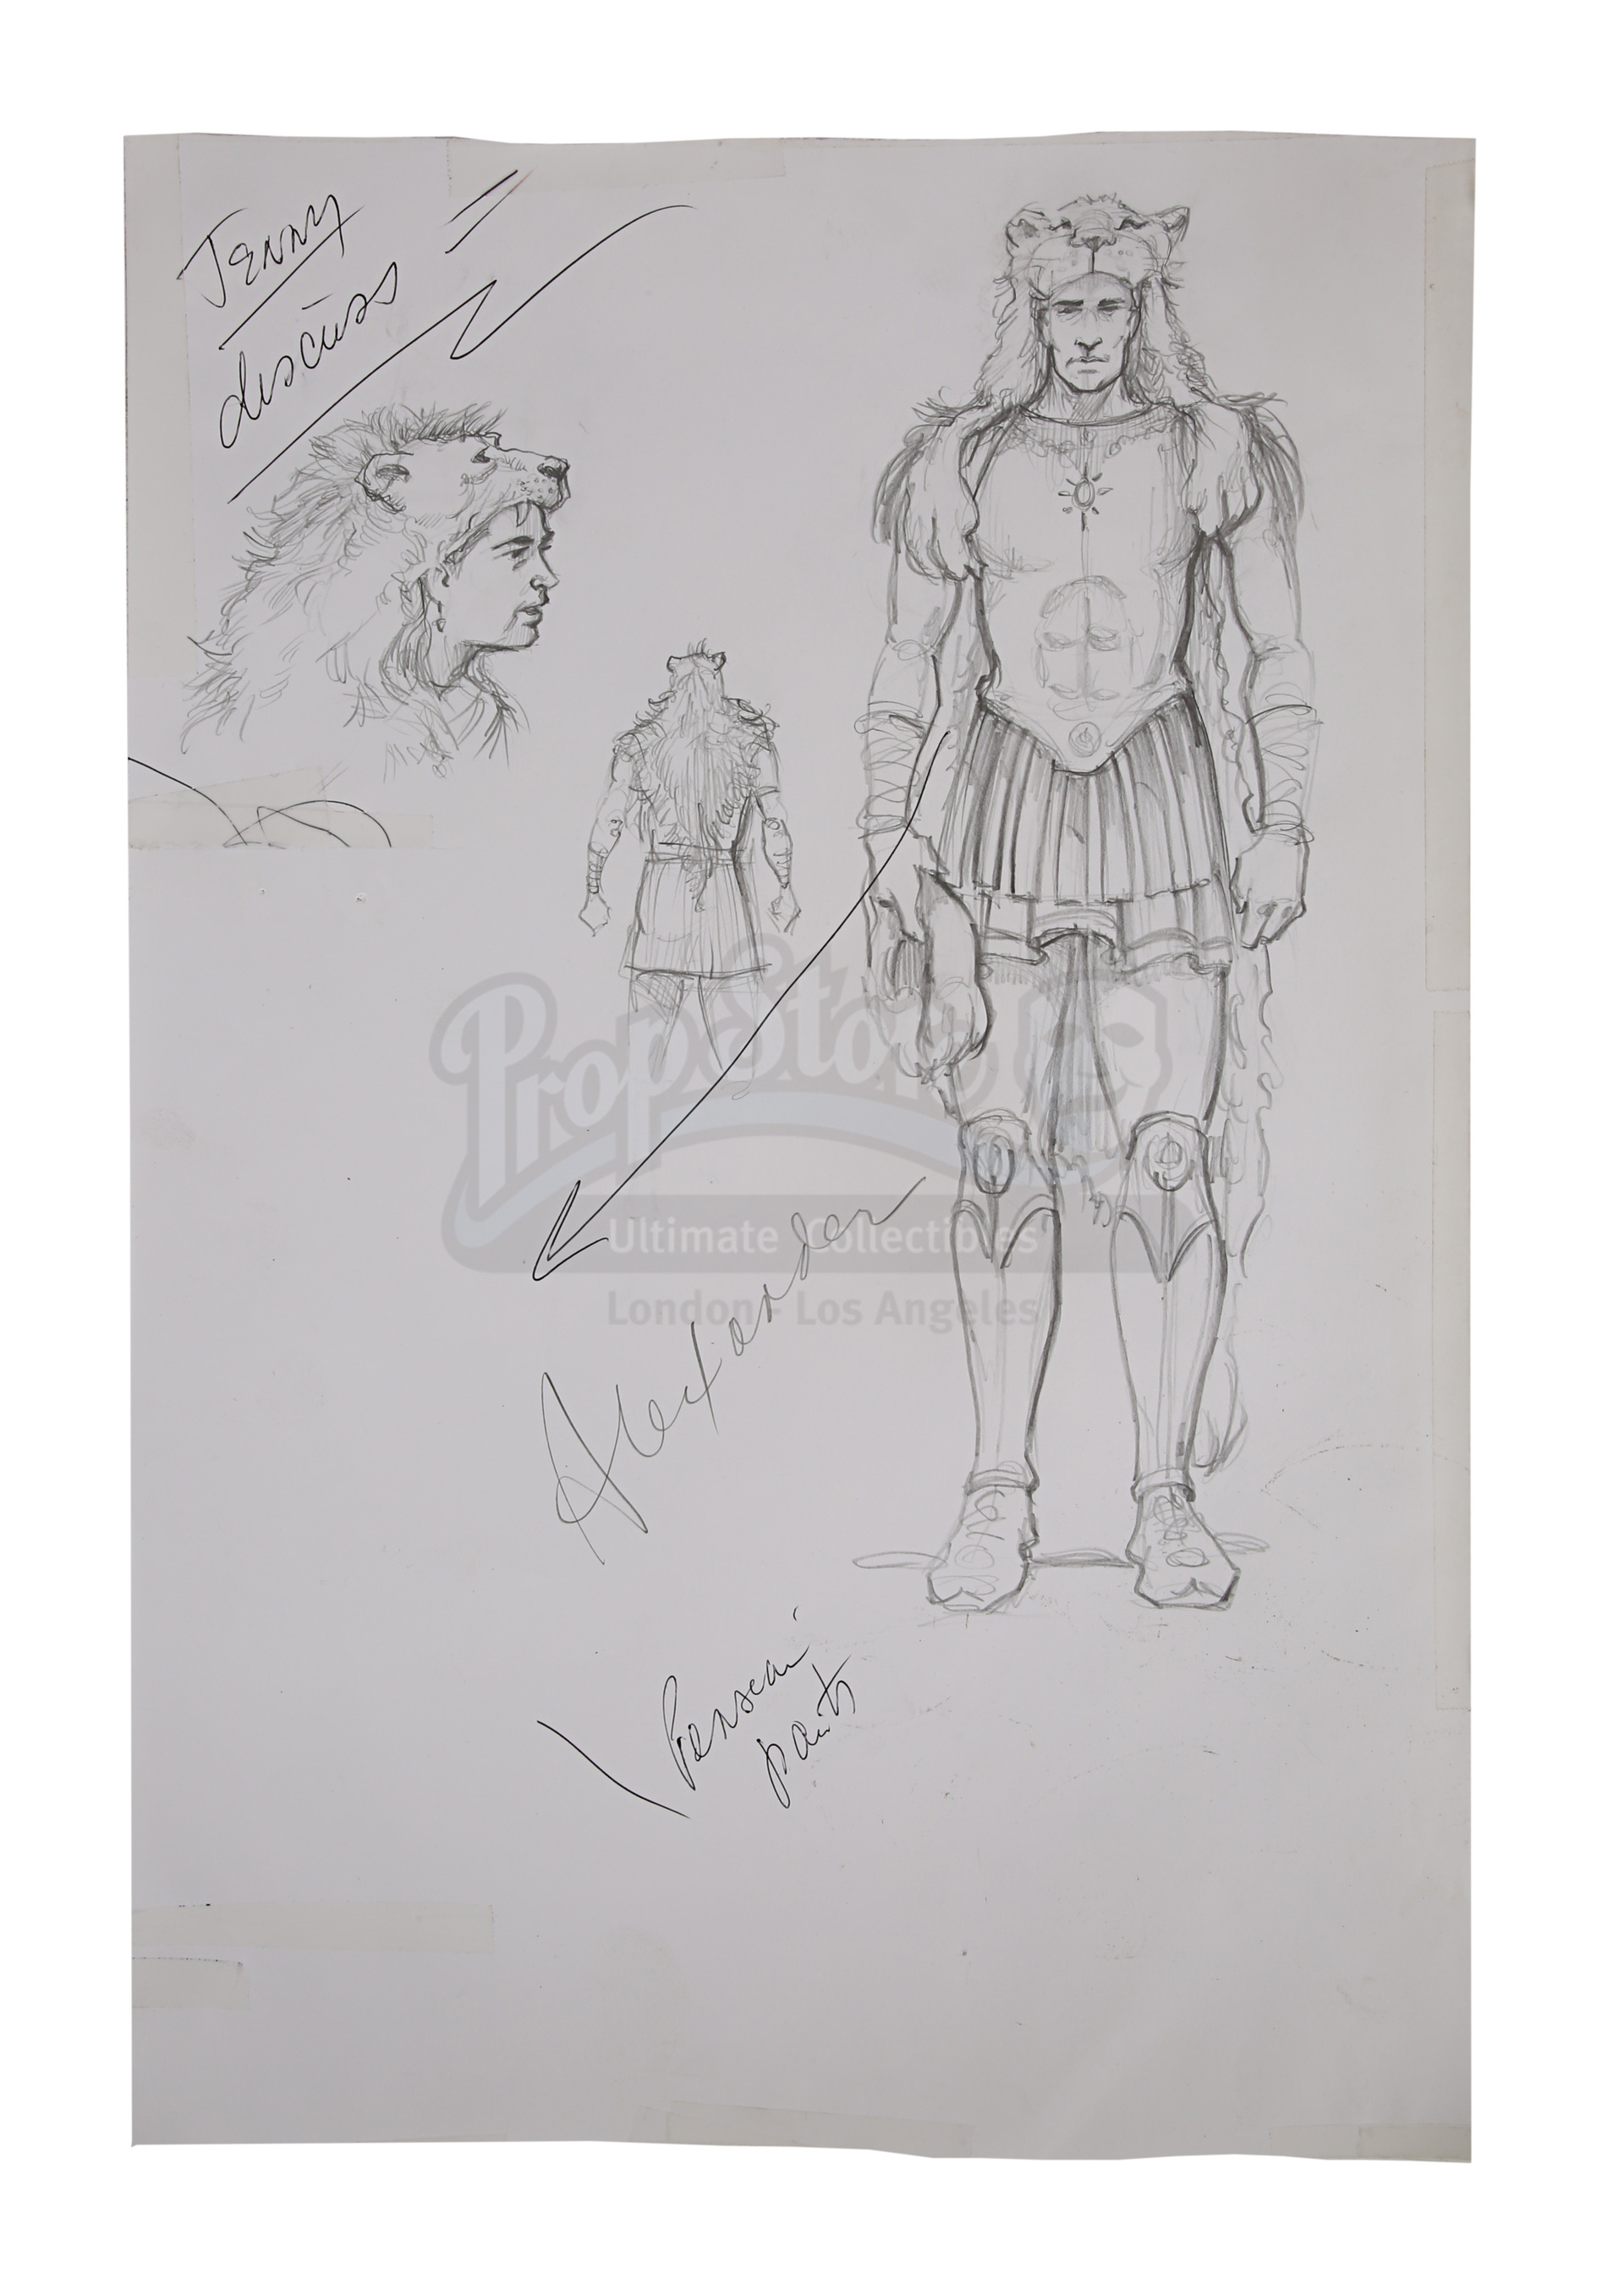 ALEXANDER (2004) - Hand-Drawn Alexander (Colin Farrell) Costume Sketches, Printed Character Concept - Image 4 of 10